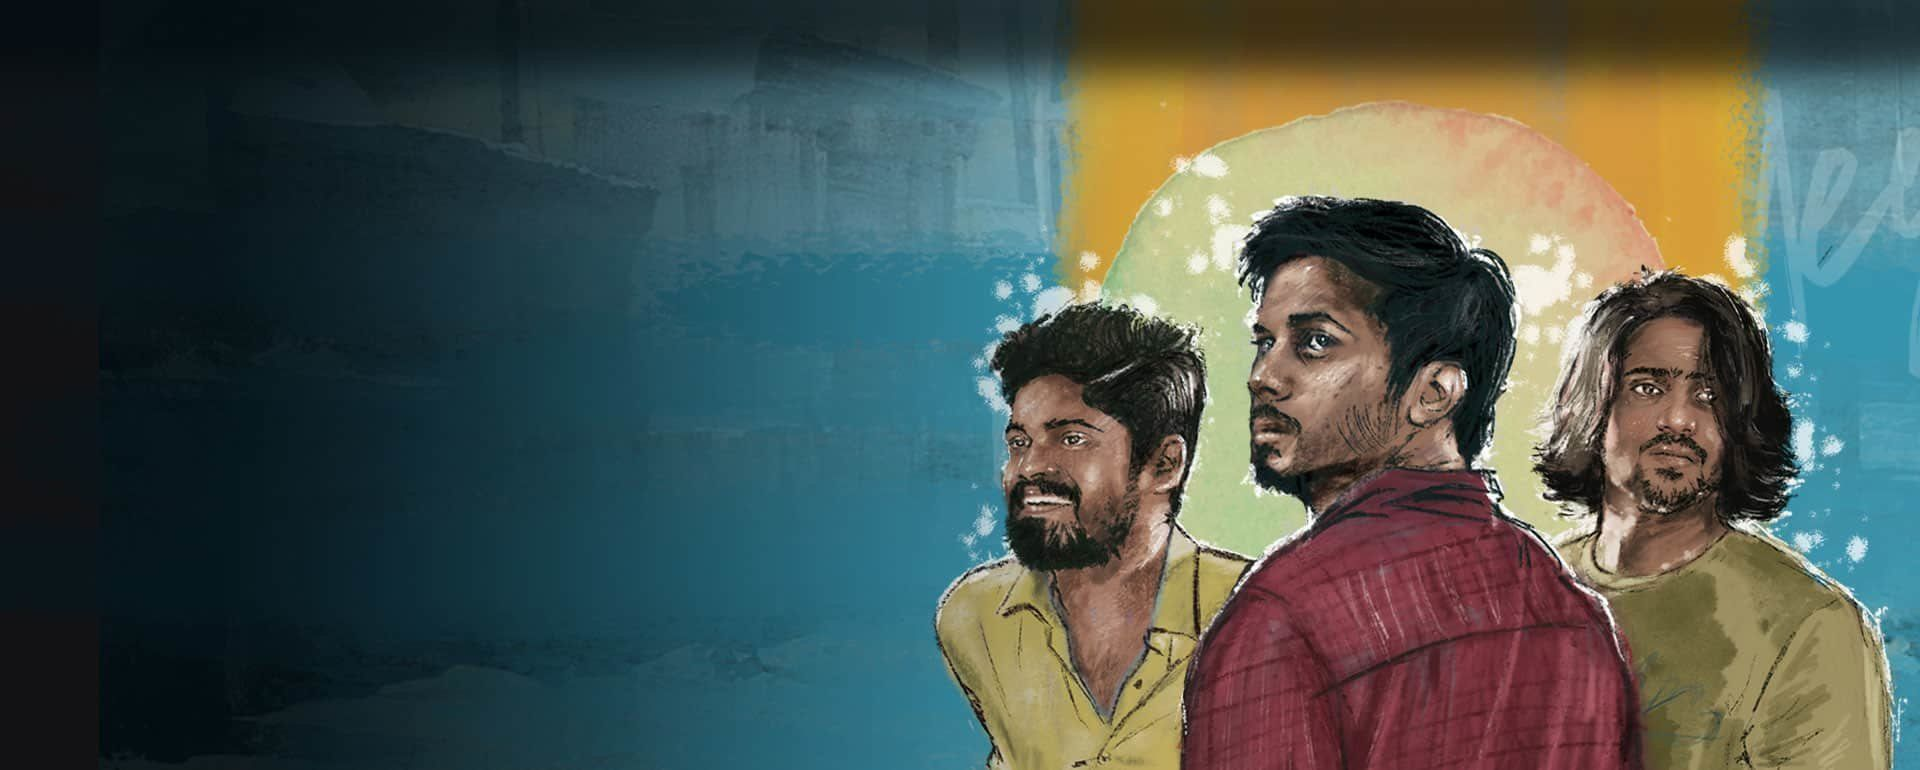 Telugu Web Series 'B. Tech' Strikes The Right Chords, But Feels A Little Too